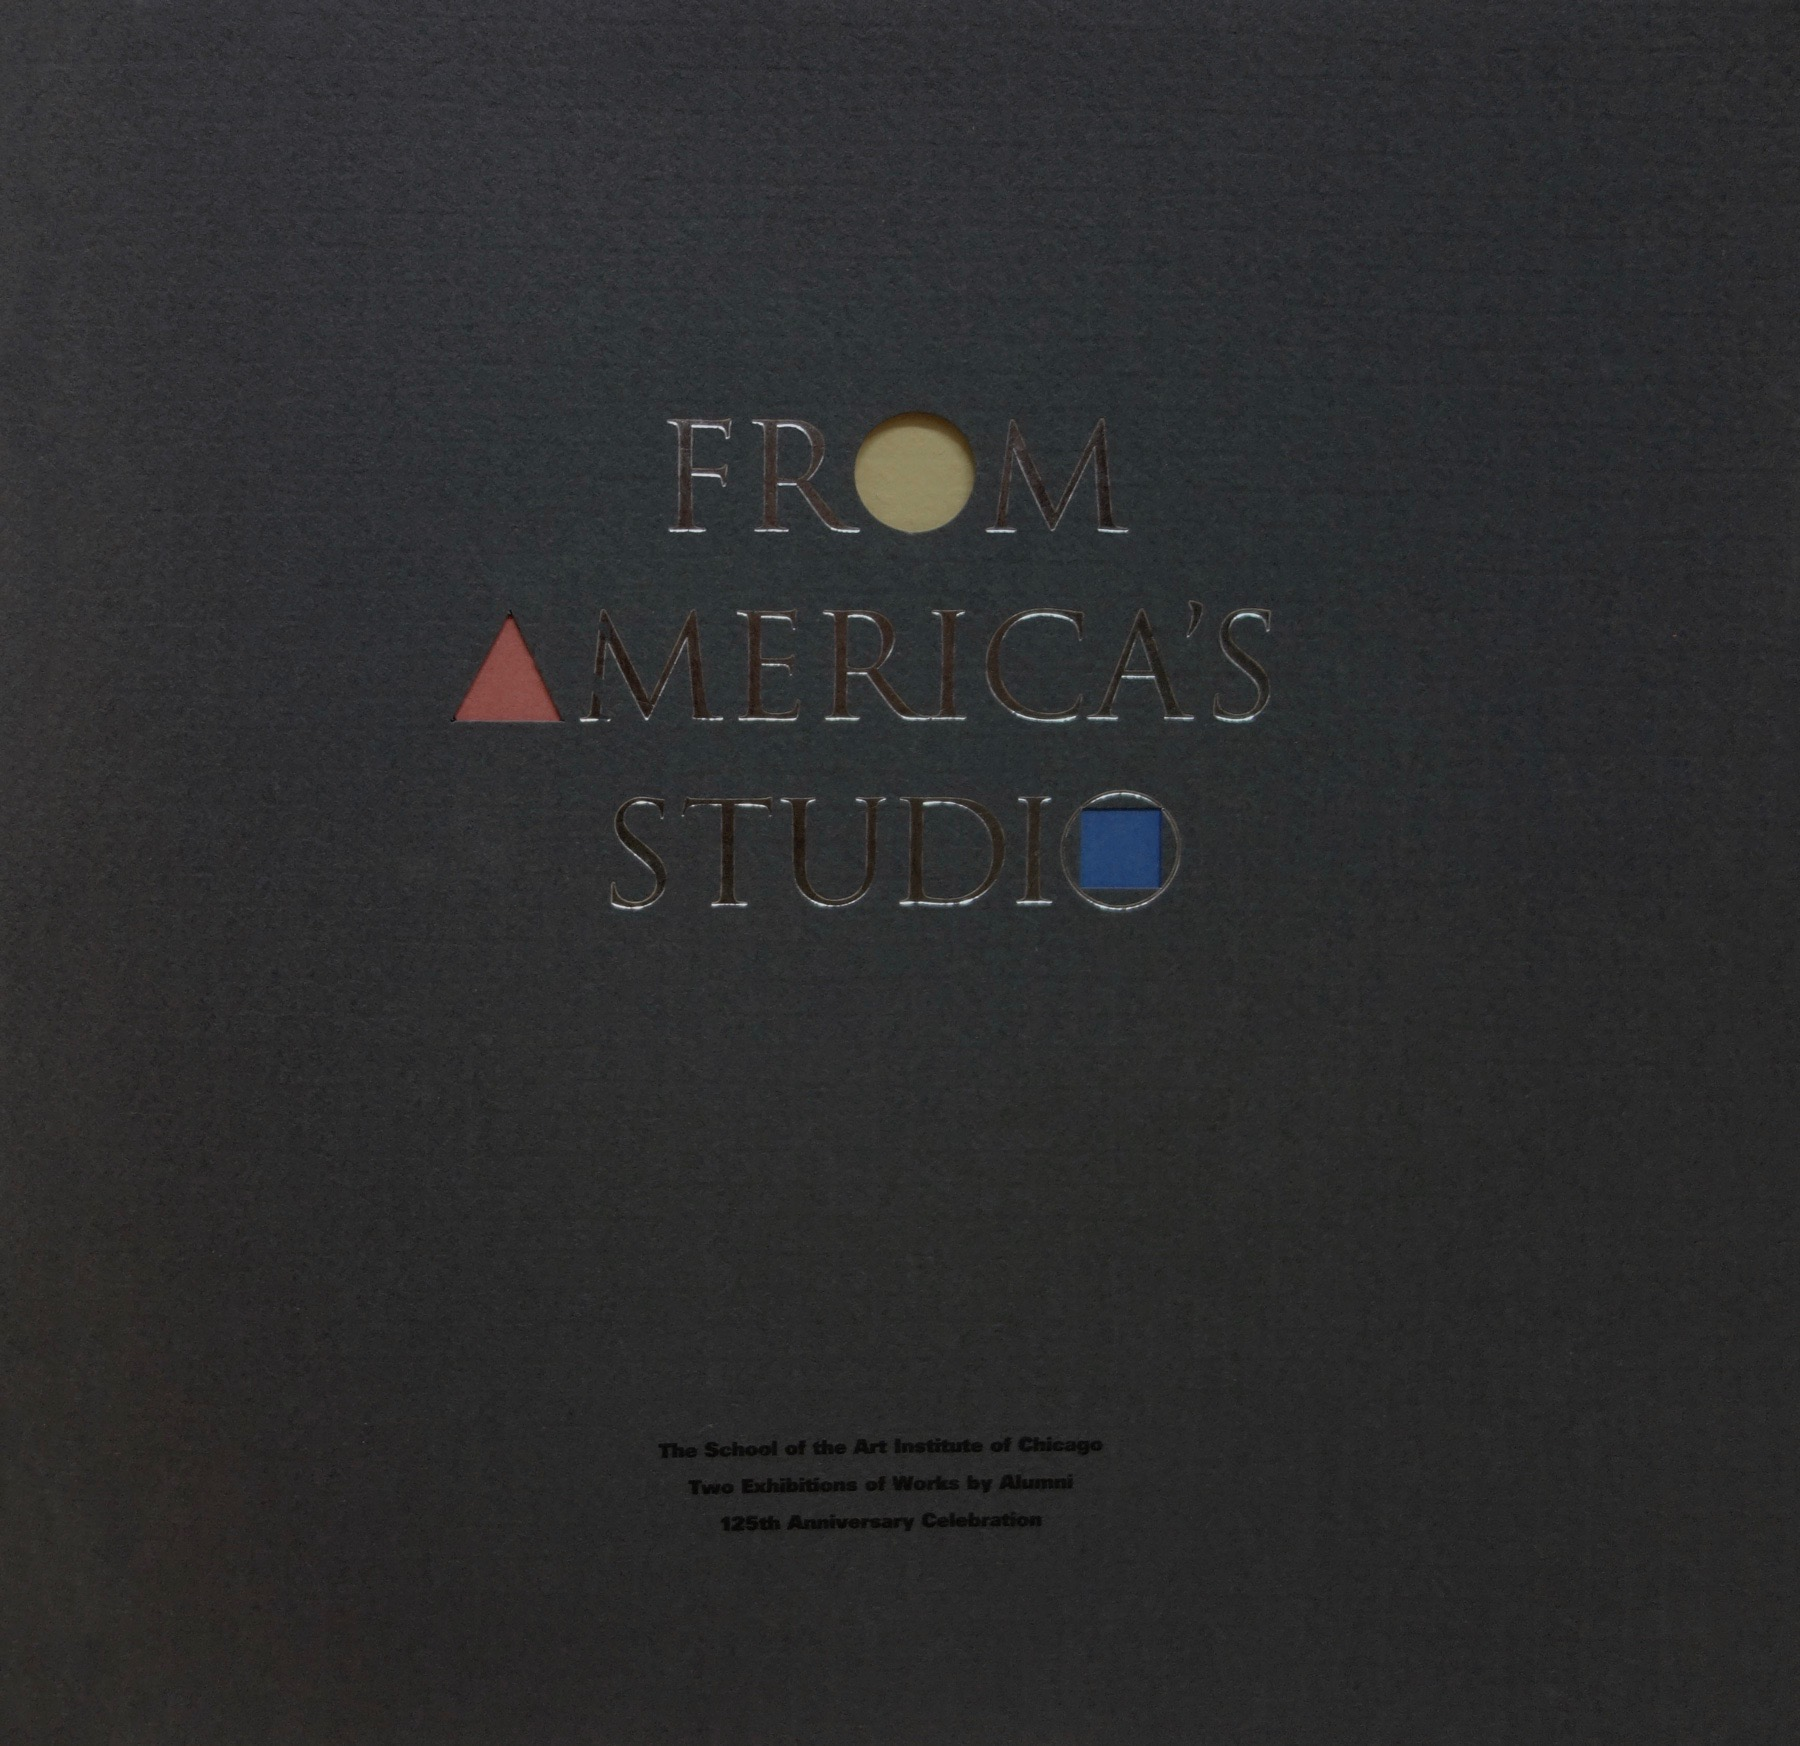 From America's Studio  was published in conjunction with two exhibitions honoring the 125th anniversary of the School of the Art Institute of Chicago. The catalog details the cultural significance of the SAIC in a forward by guest curators - Neal Benezra and James Yood - and in essays by Robert Storr and Dennis Adrian.